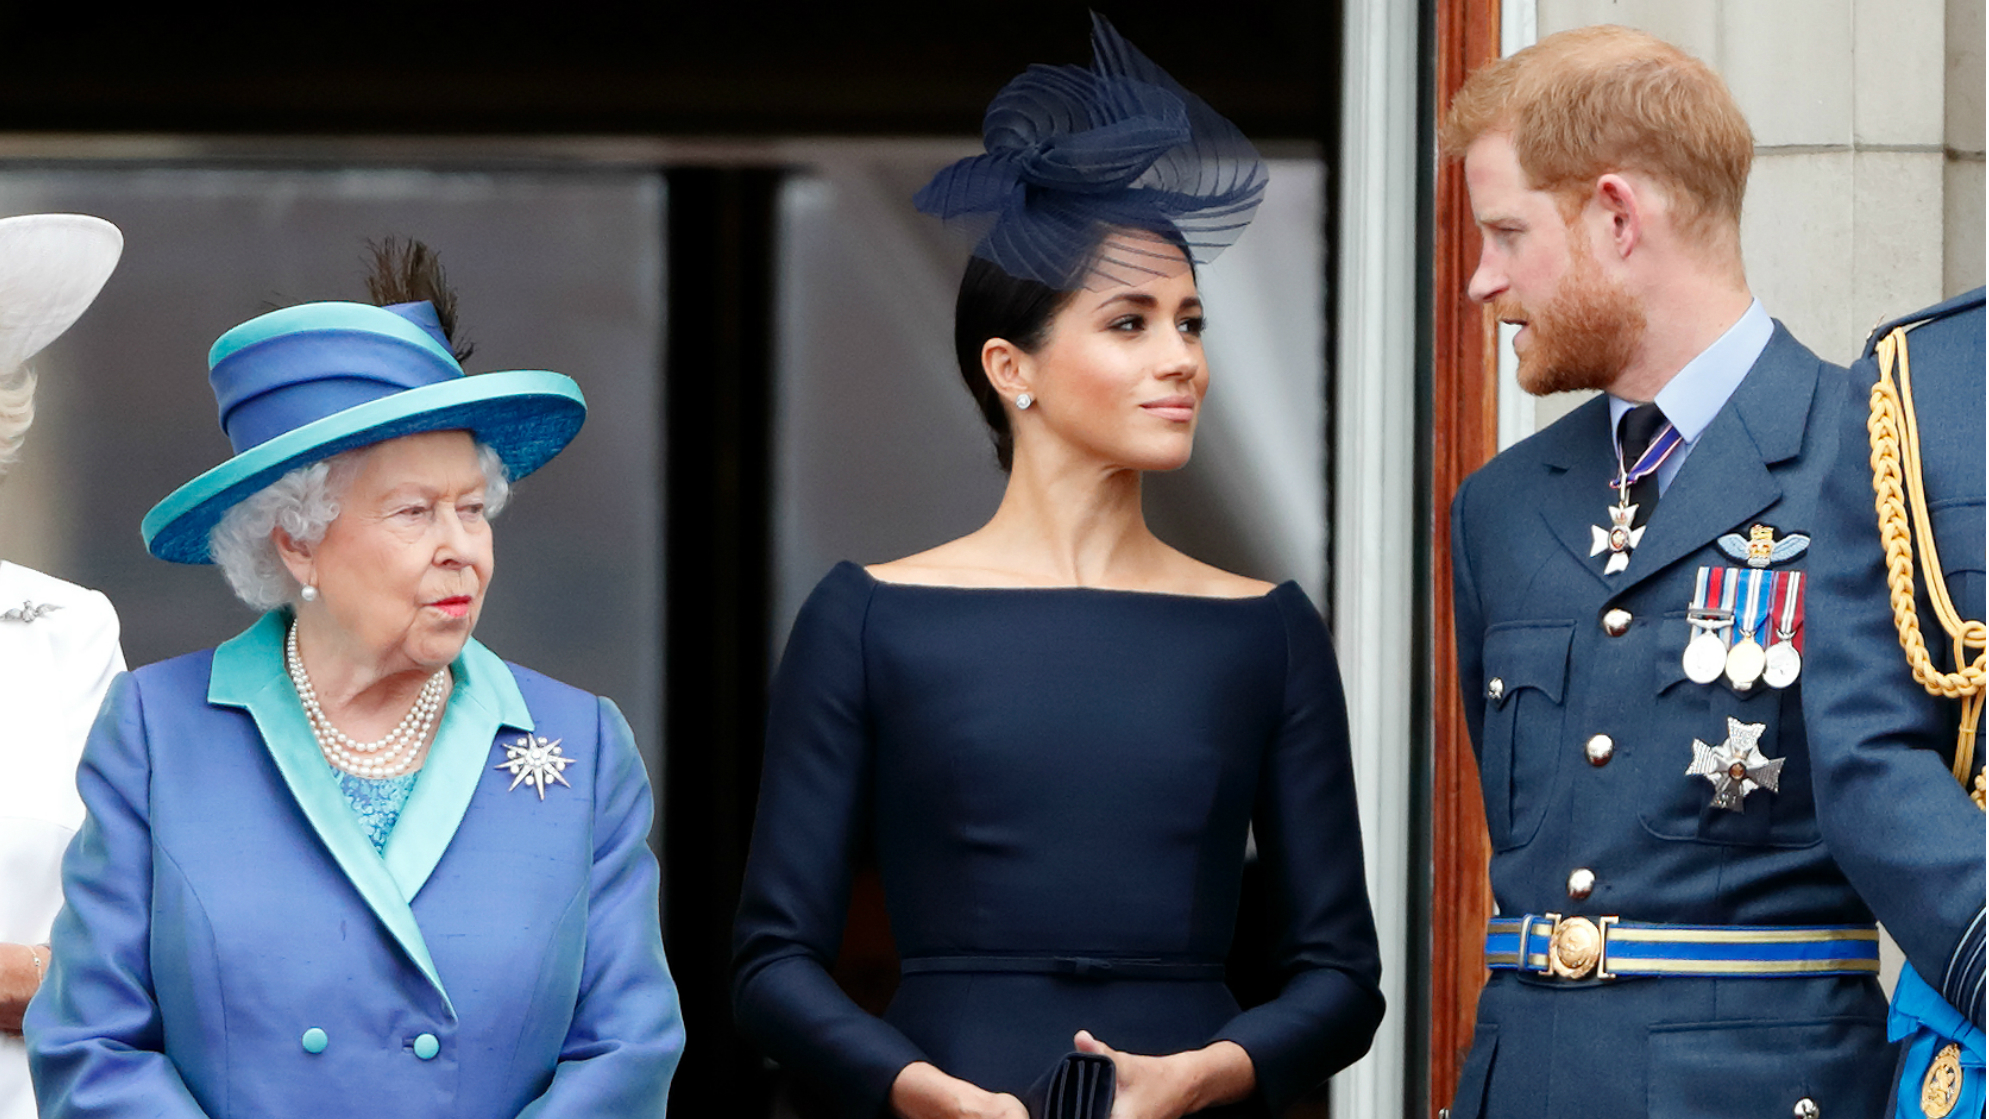 Where do you stand on the Megxit debate?